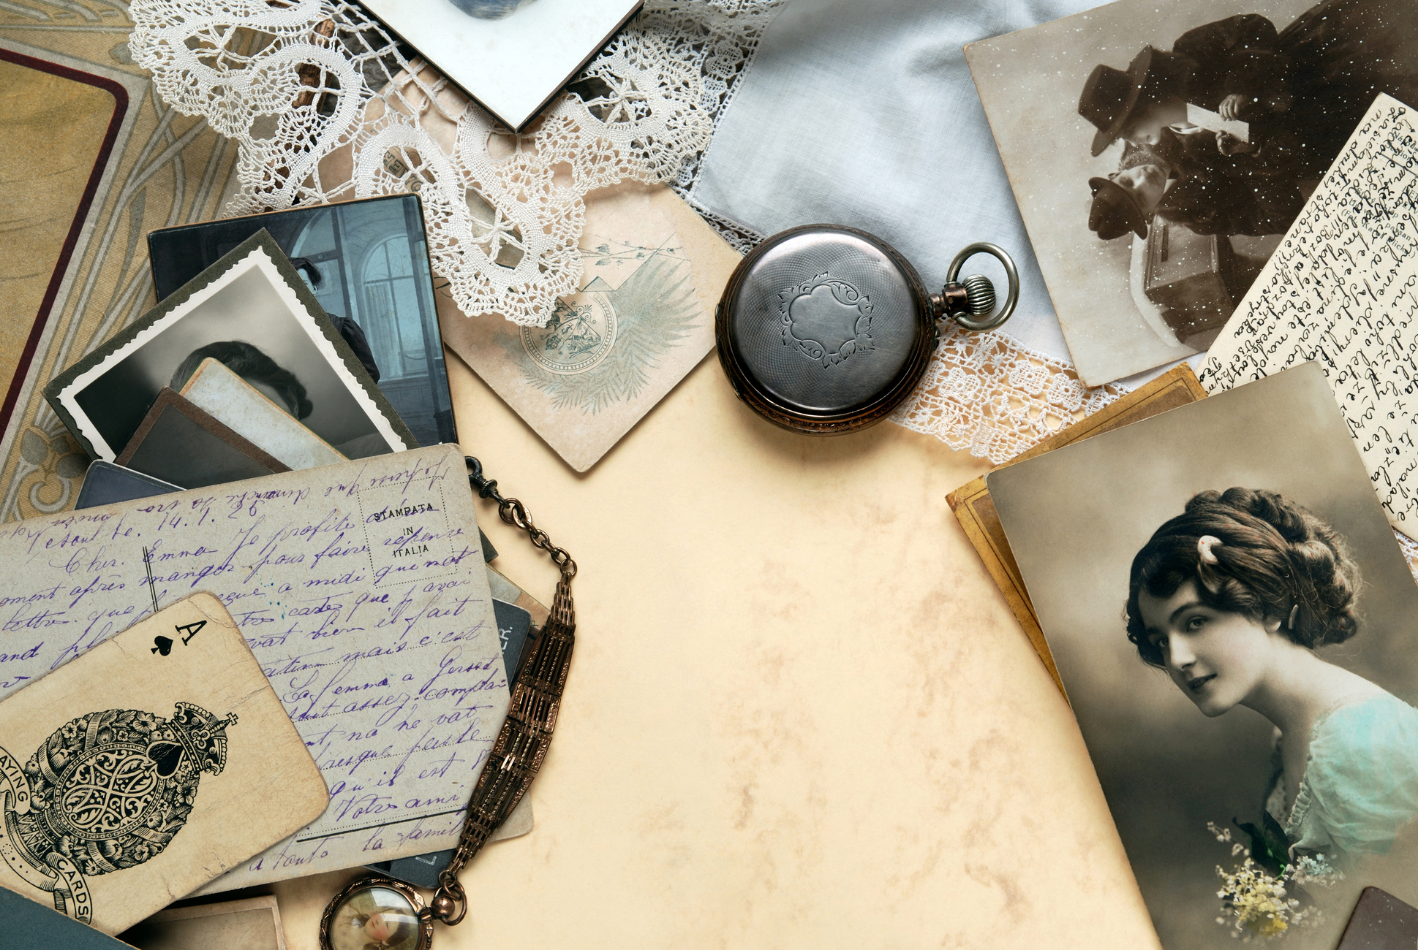 Image of old family letters, images, and heirlooms